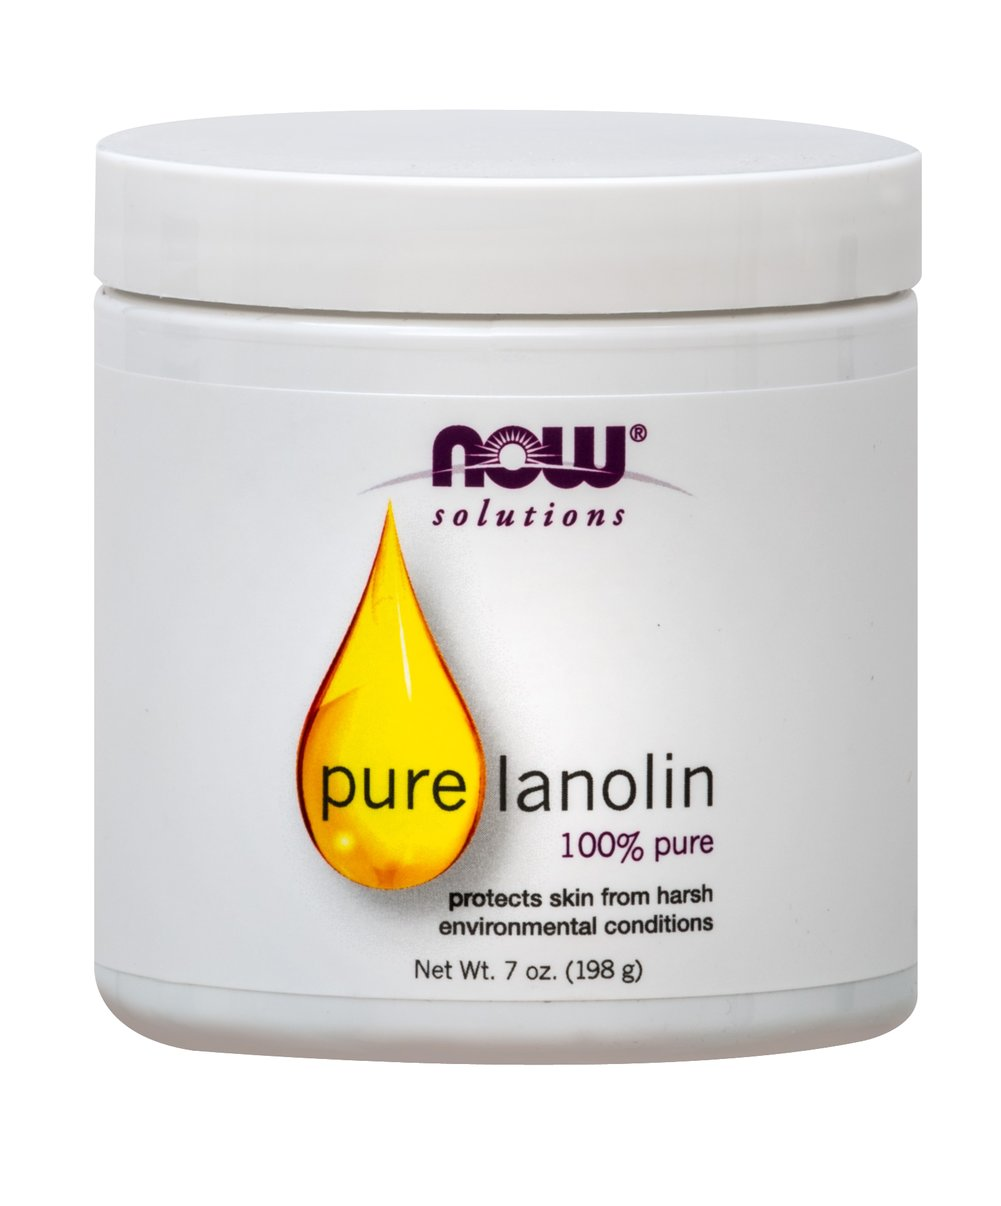 Pure Lanolin <p><strong>From the Manufacturer's Label:</strong></p><p>100% Pure</p><p>Protects chapped Skin</p><p><strong>Condition:</strong> Skin in need of protection from wind burn and environmental factors.</p><p><strong>Solution:</strong> Pure Lanolin is a powerful, natural moisturizer that can promote the smoothness and translucency associated with healthy, youthful skin. Derived from the wool of